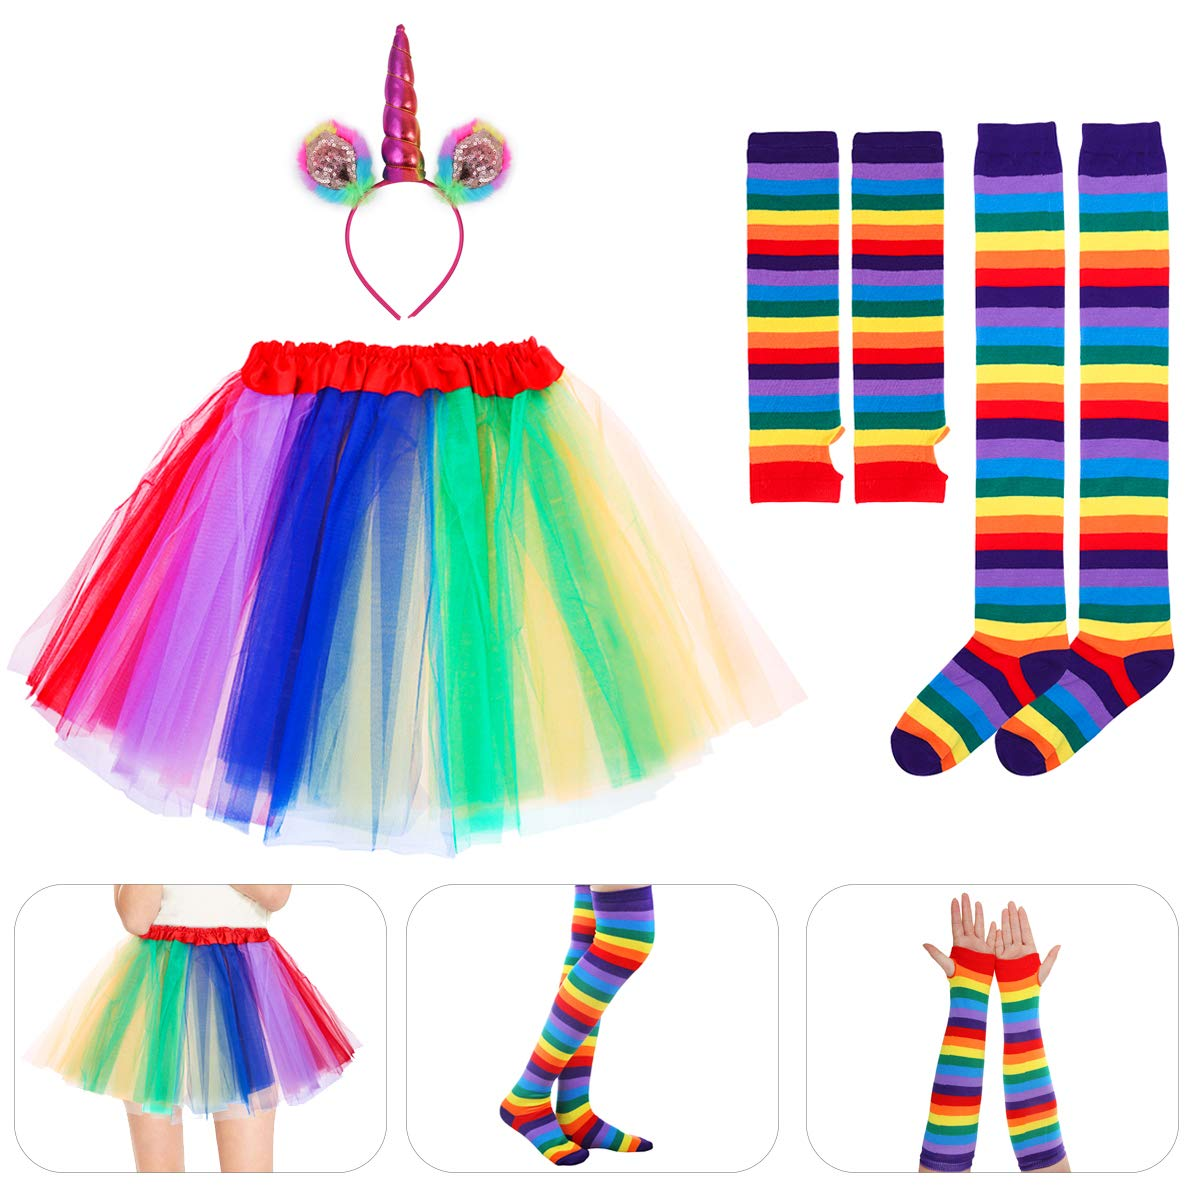 Amosfun Unicorn Cosplay Set Rainbow Tutu Skirt with Headband Arm Warmer Leg Stocking for Adult Halloween Carnival Party